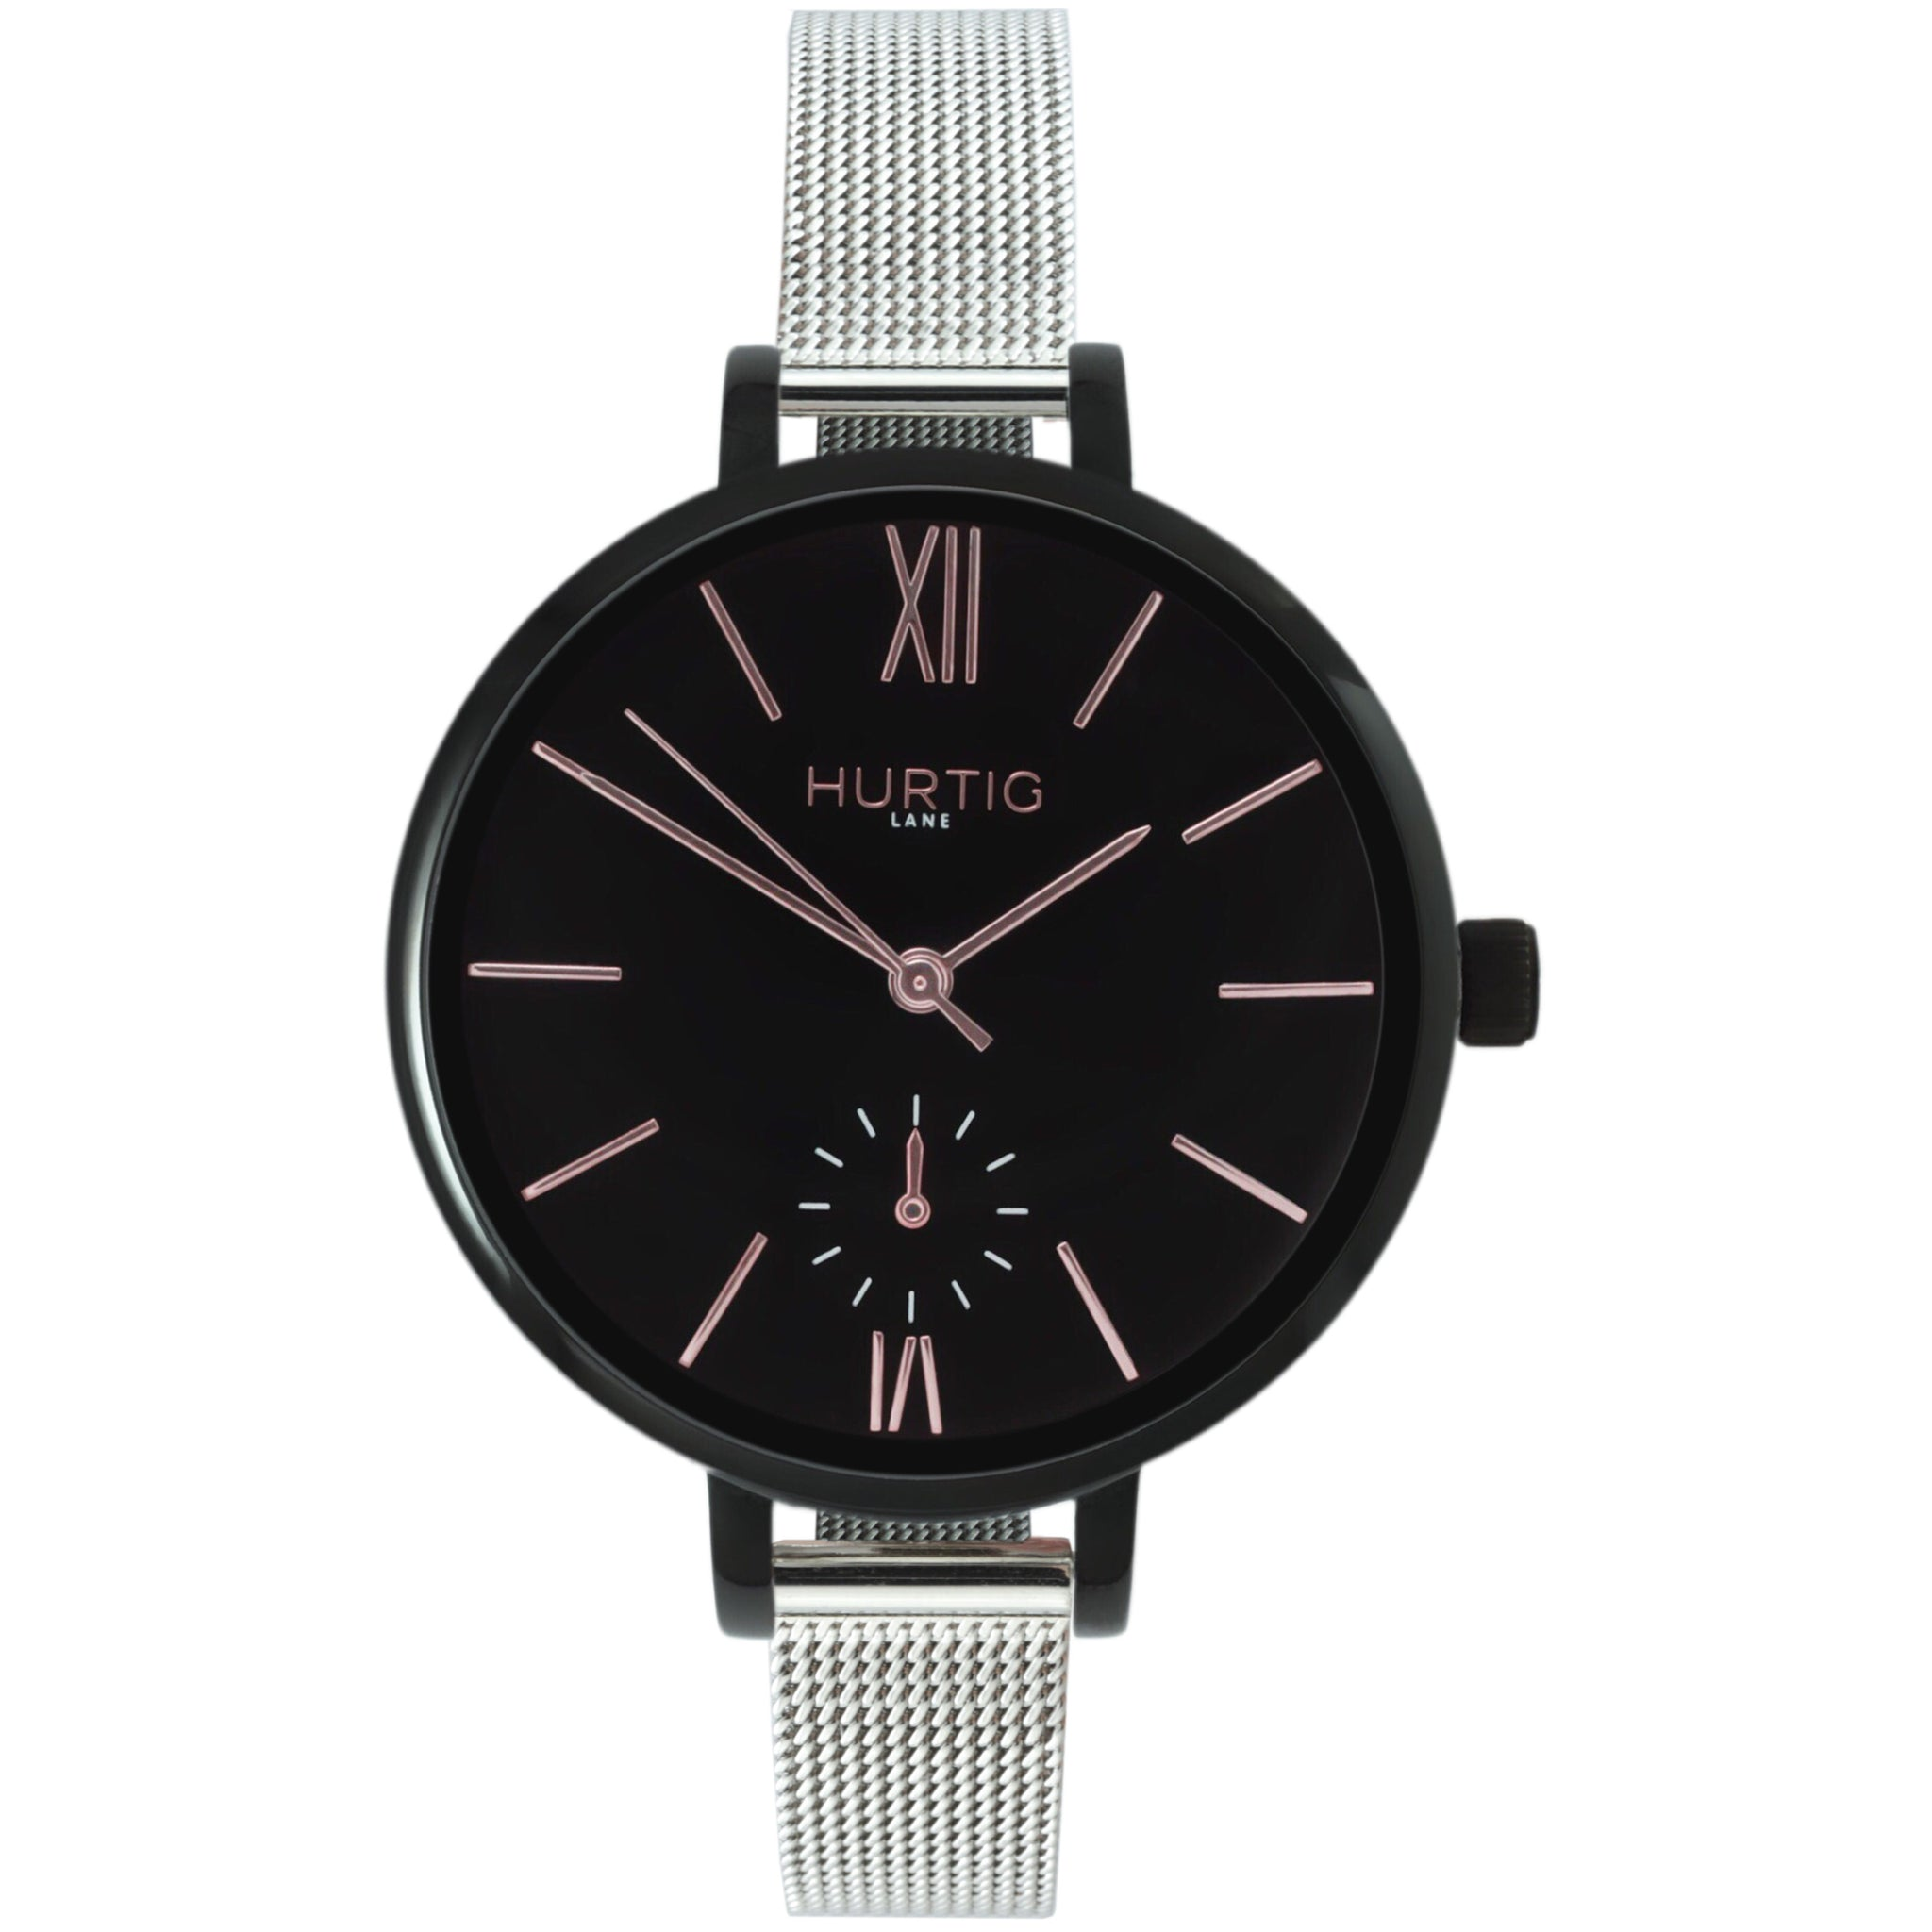 AMALFI WOMEN'S WATCH, BLACK/BLACK/SILVER